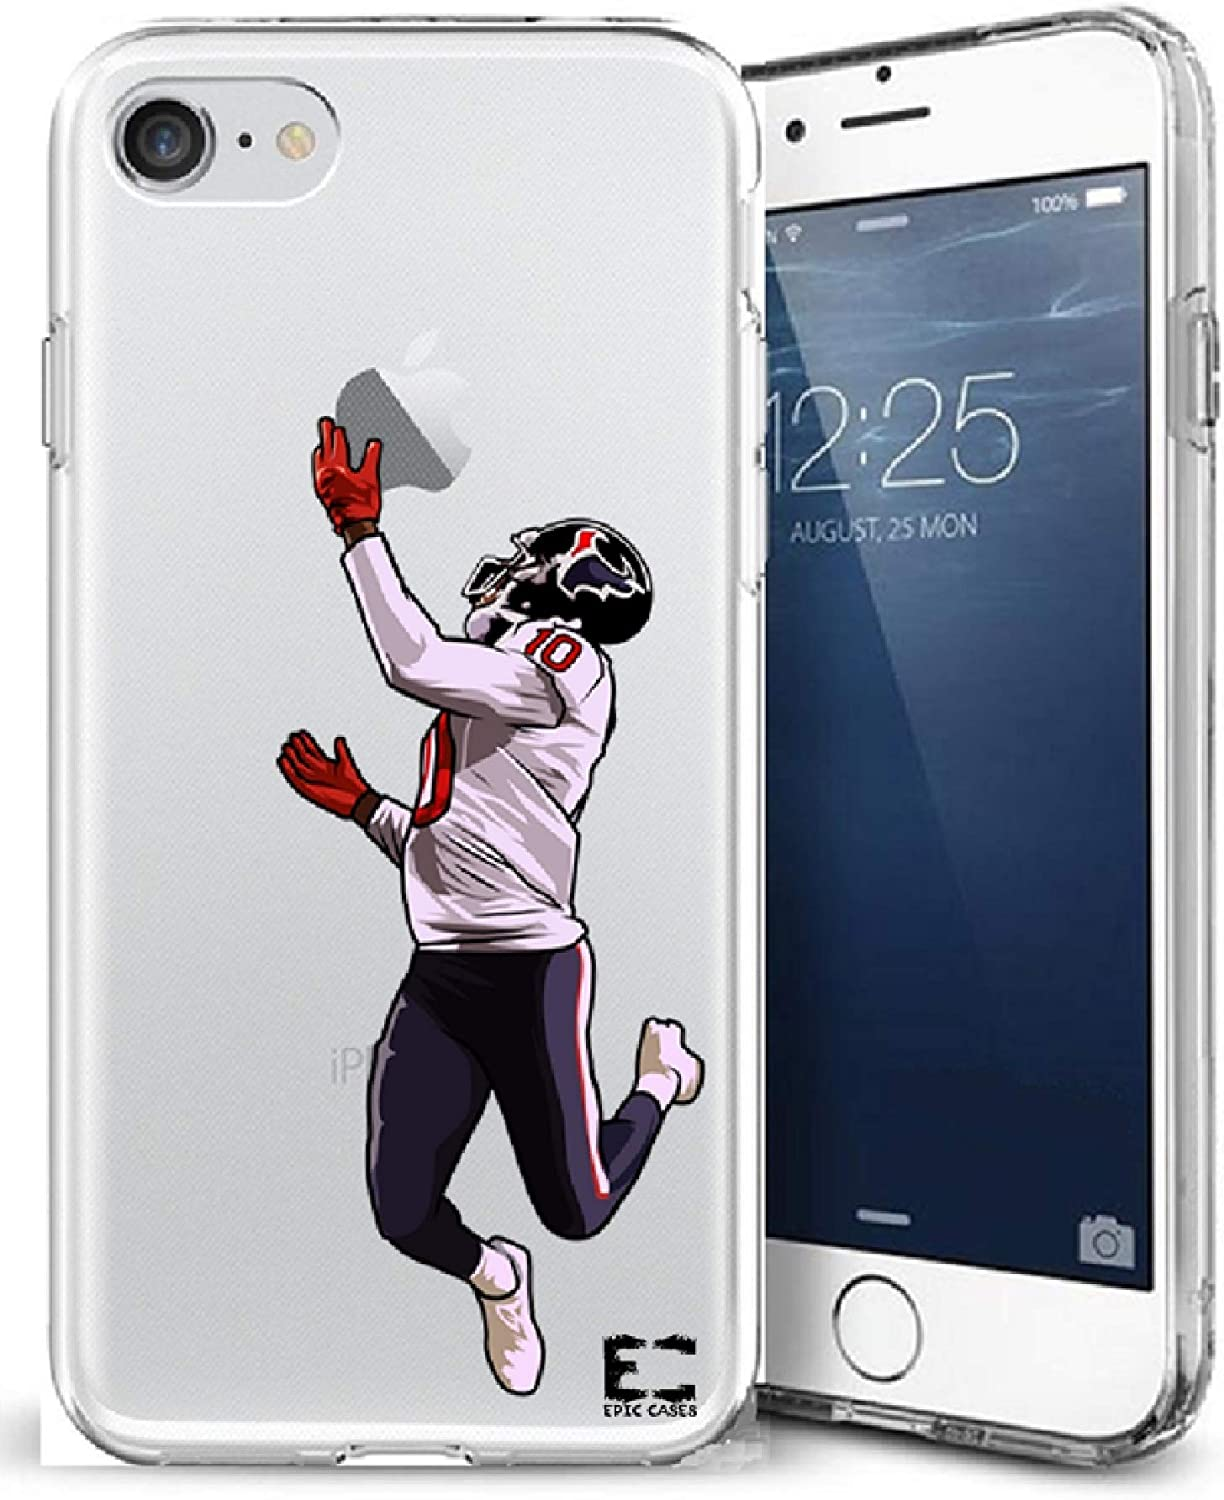 Epic Cases iPhone6 Plus iPhone 7/iPhone 8 Plus Case Ultra Slim Crystal Clear Football Series Soft Transparent TPU Case Cover Apple (Dhop Texans, iPhone 6/7/8 Plus)